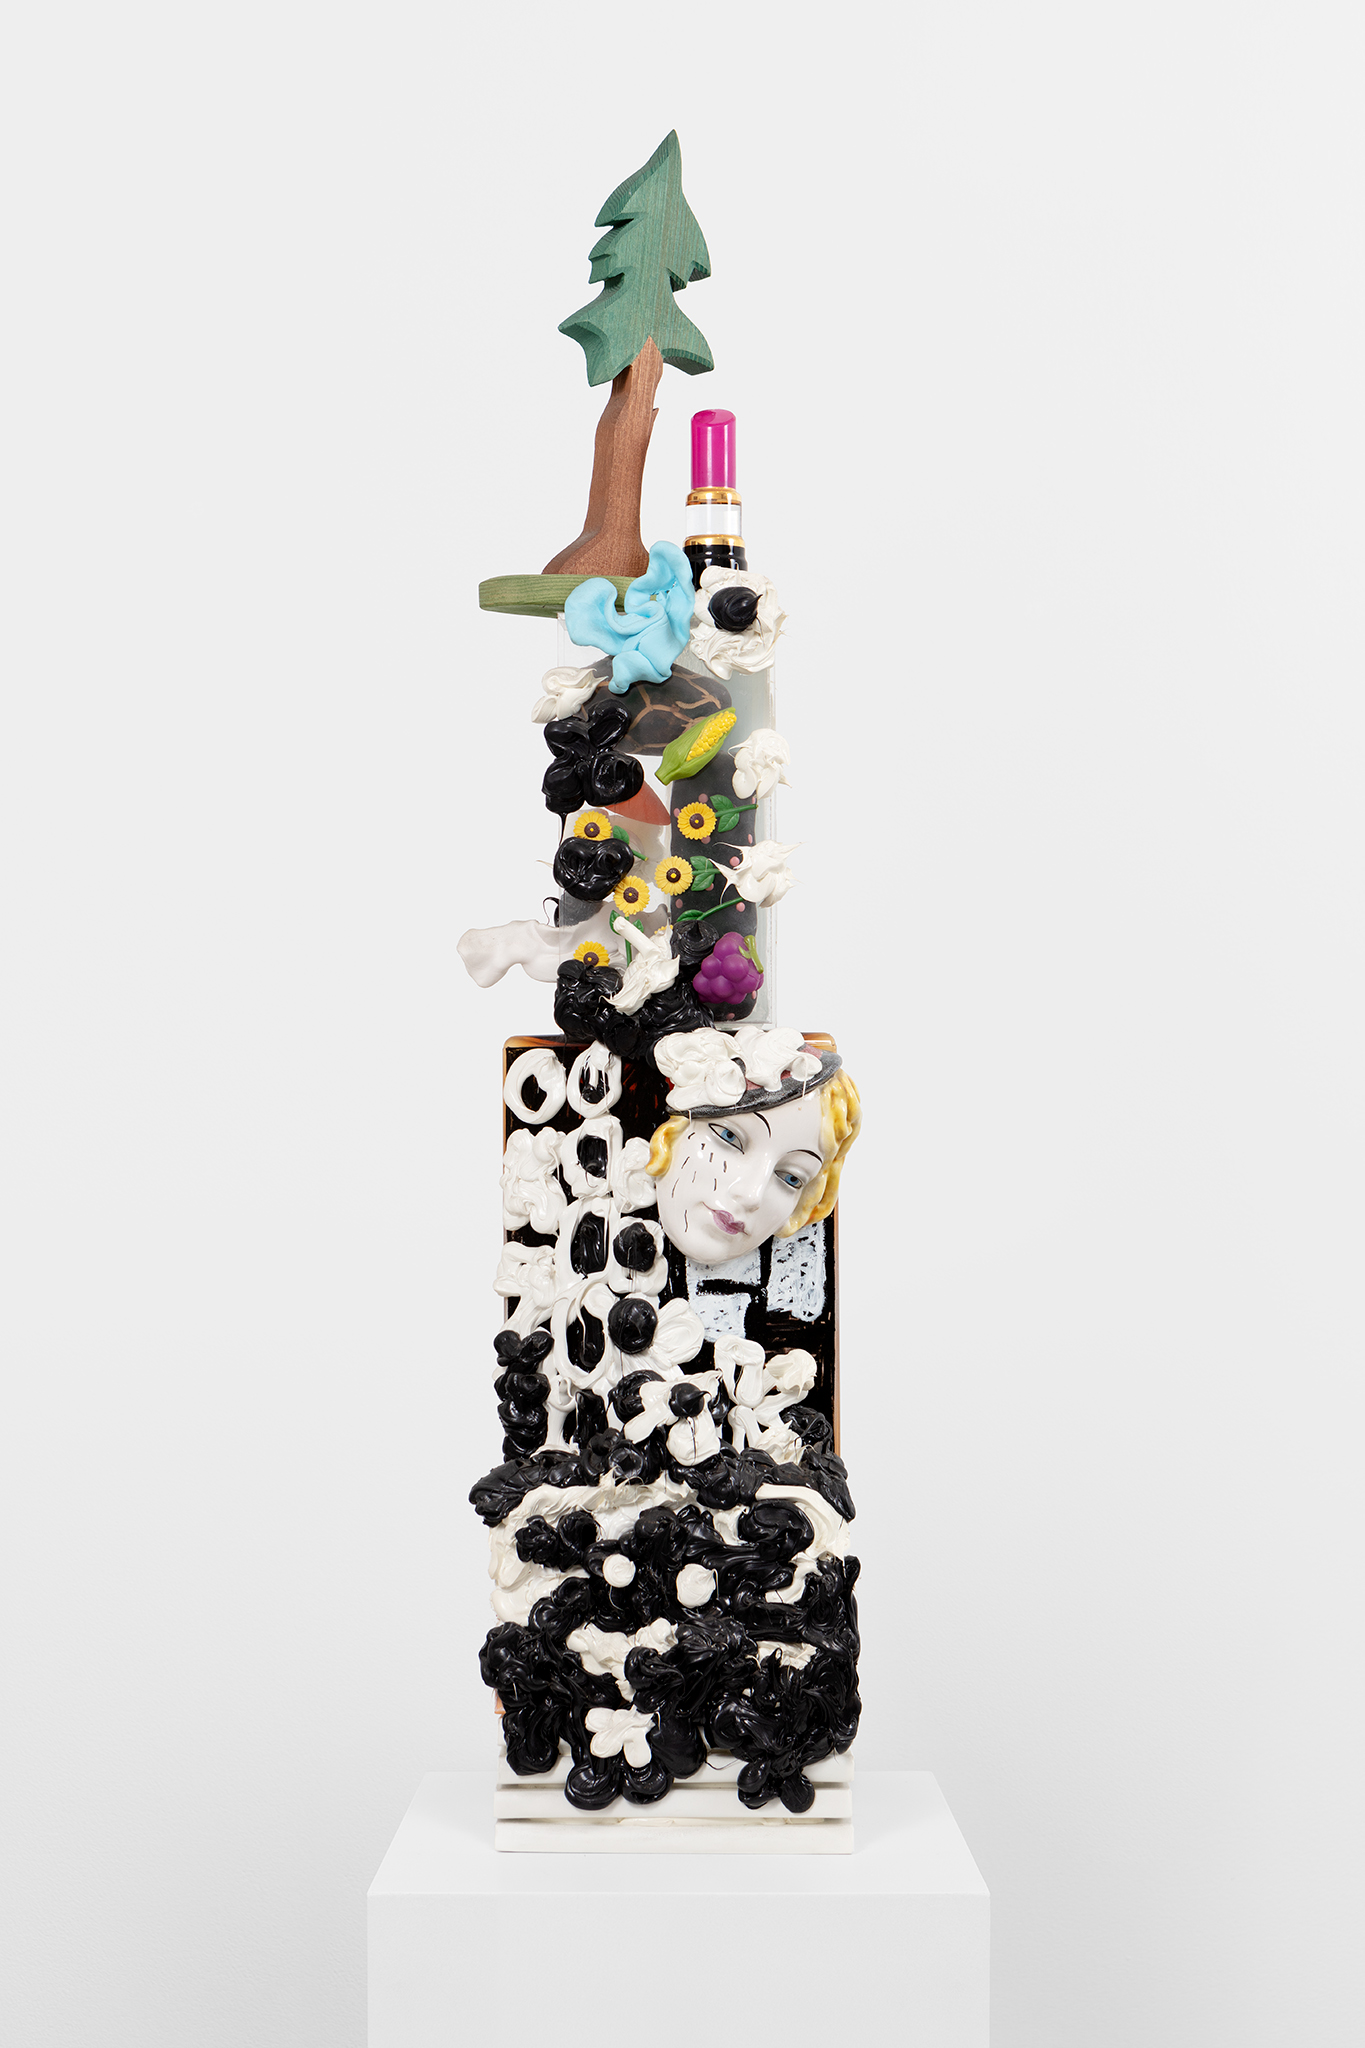 Yngve Benum, Frøya, 2019, mixed media sculpture, 106 x 21 x 13 cm